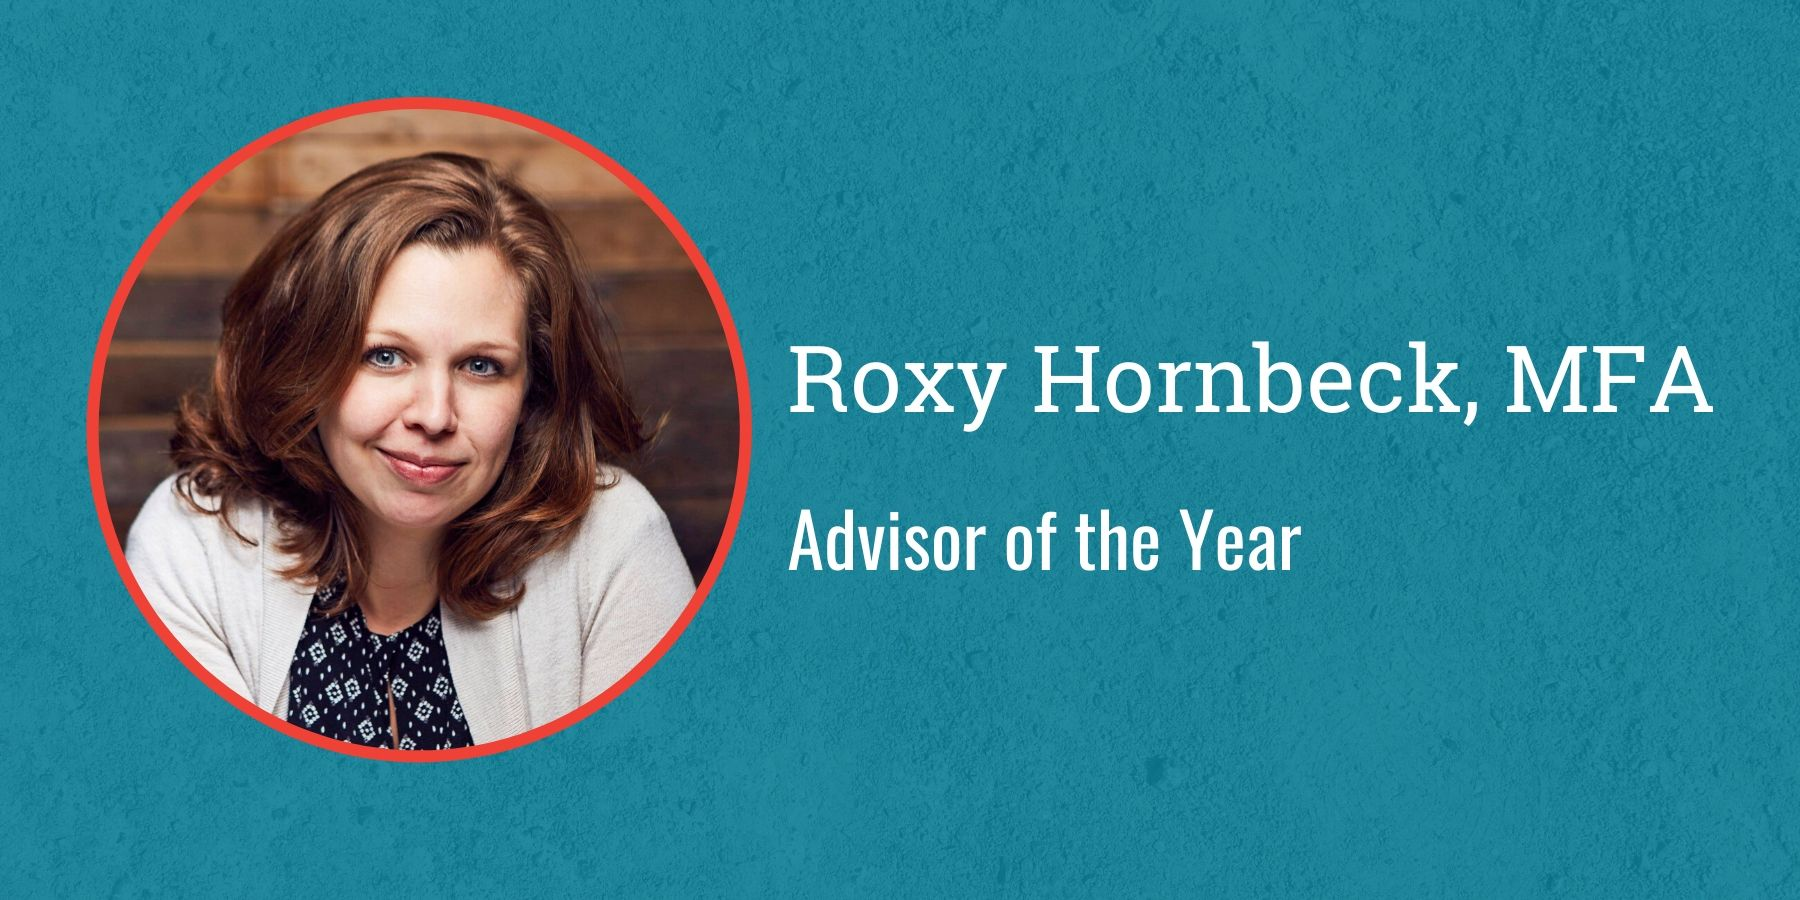 Photo of Roxy Hornbeck and text Advisory of the Year